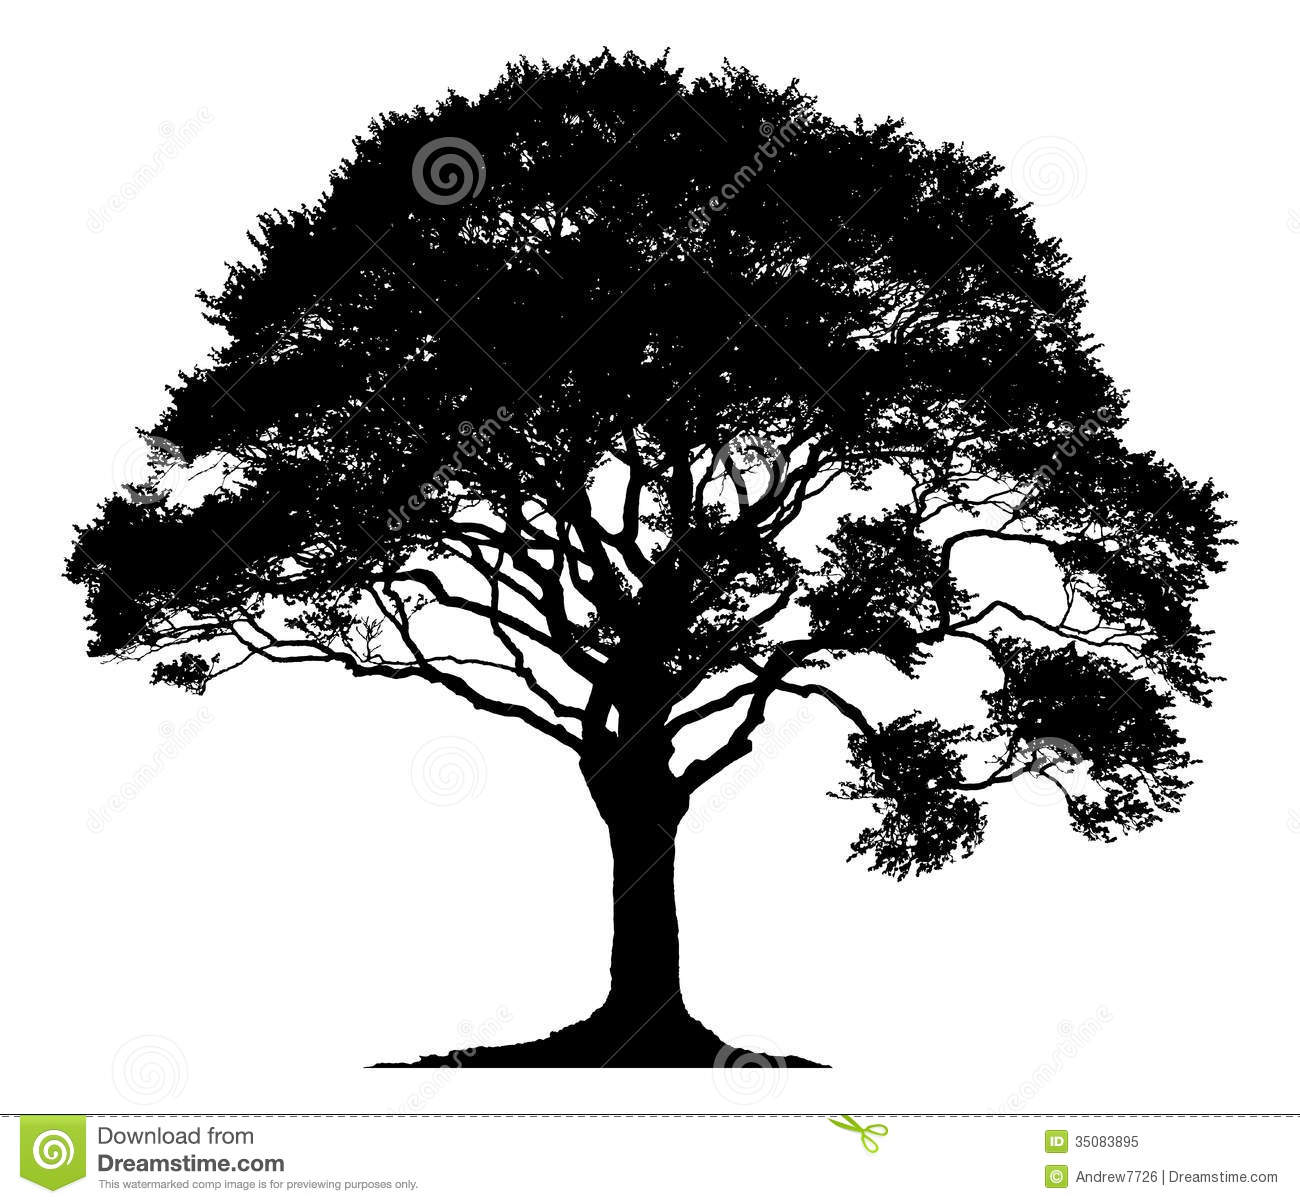 Lonely Tree clipart #14, Download drawings